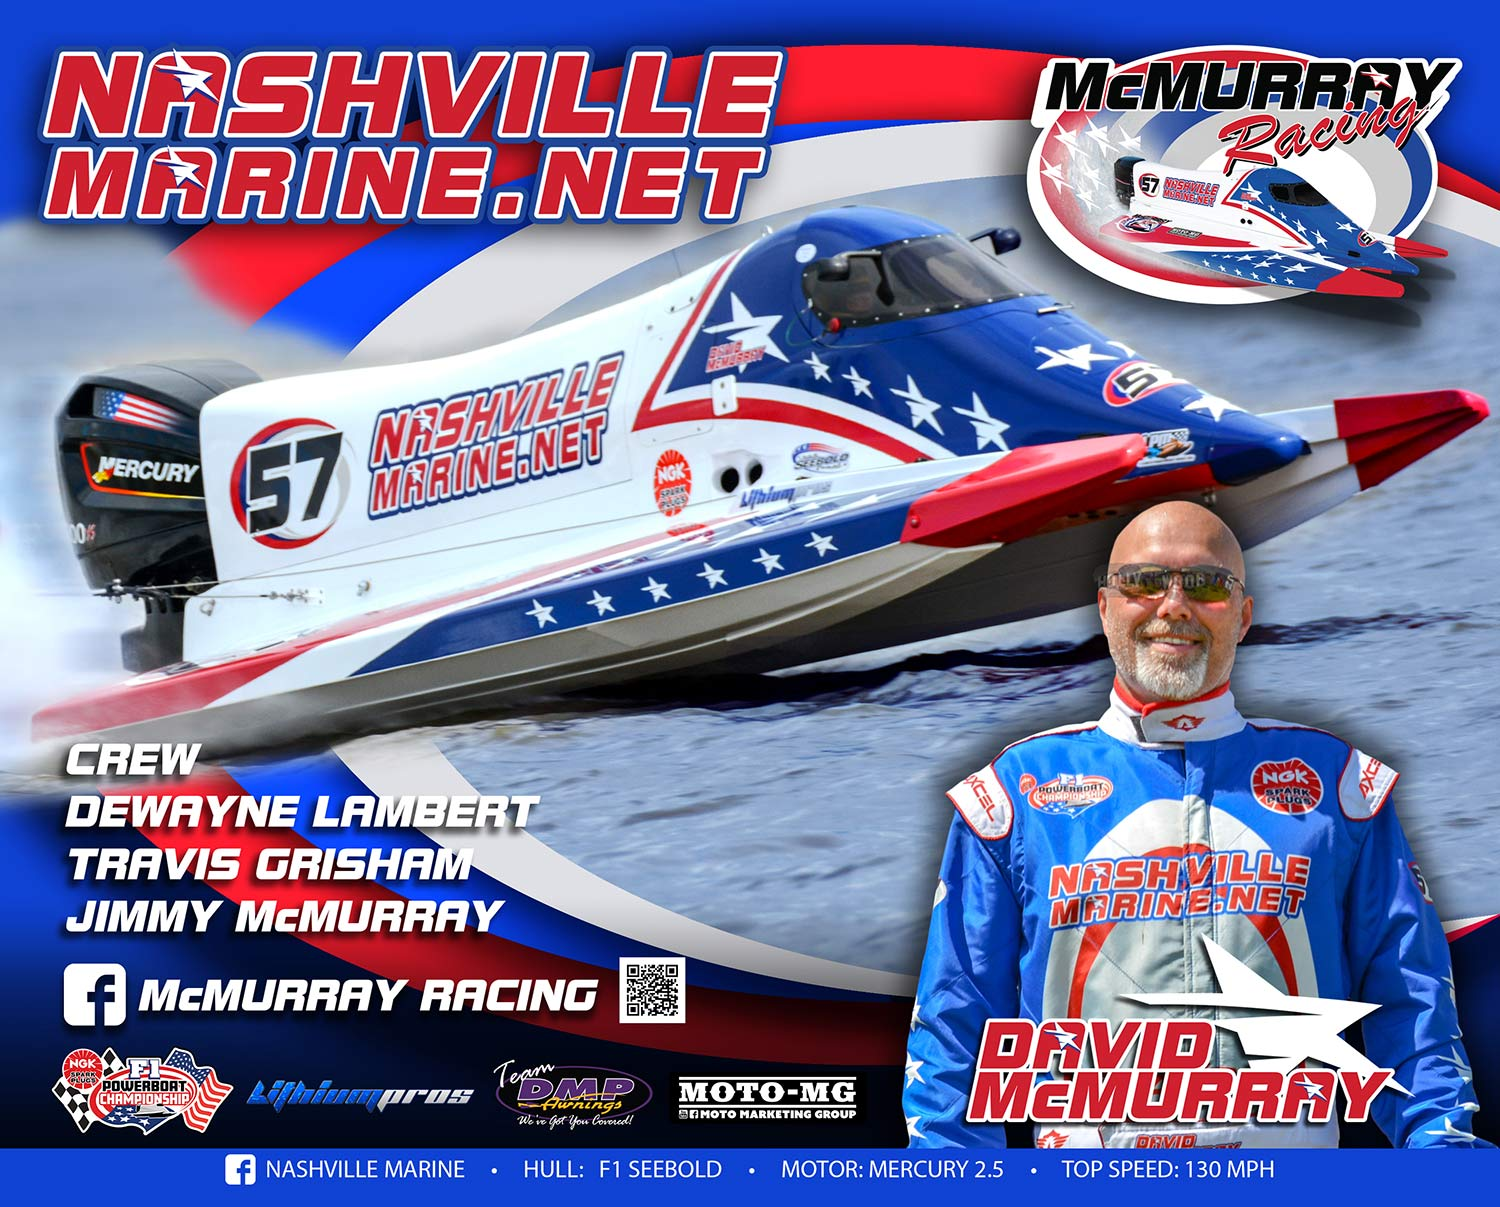 Nashville Marine - Dave-McMurray F1 Boat Racing -Signature-Card-2019